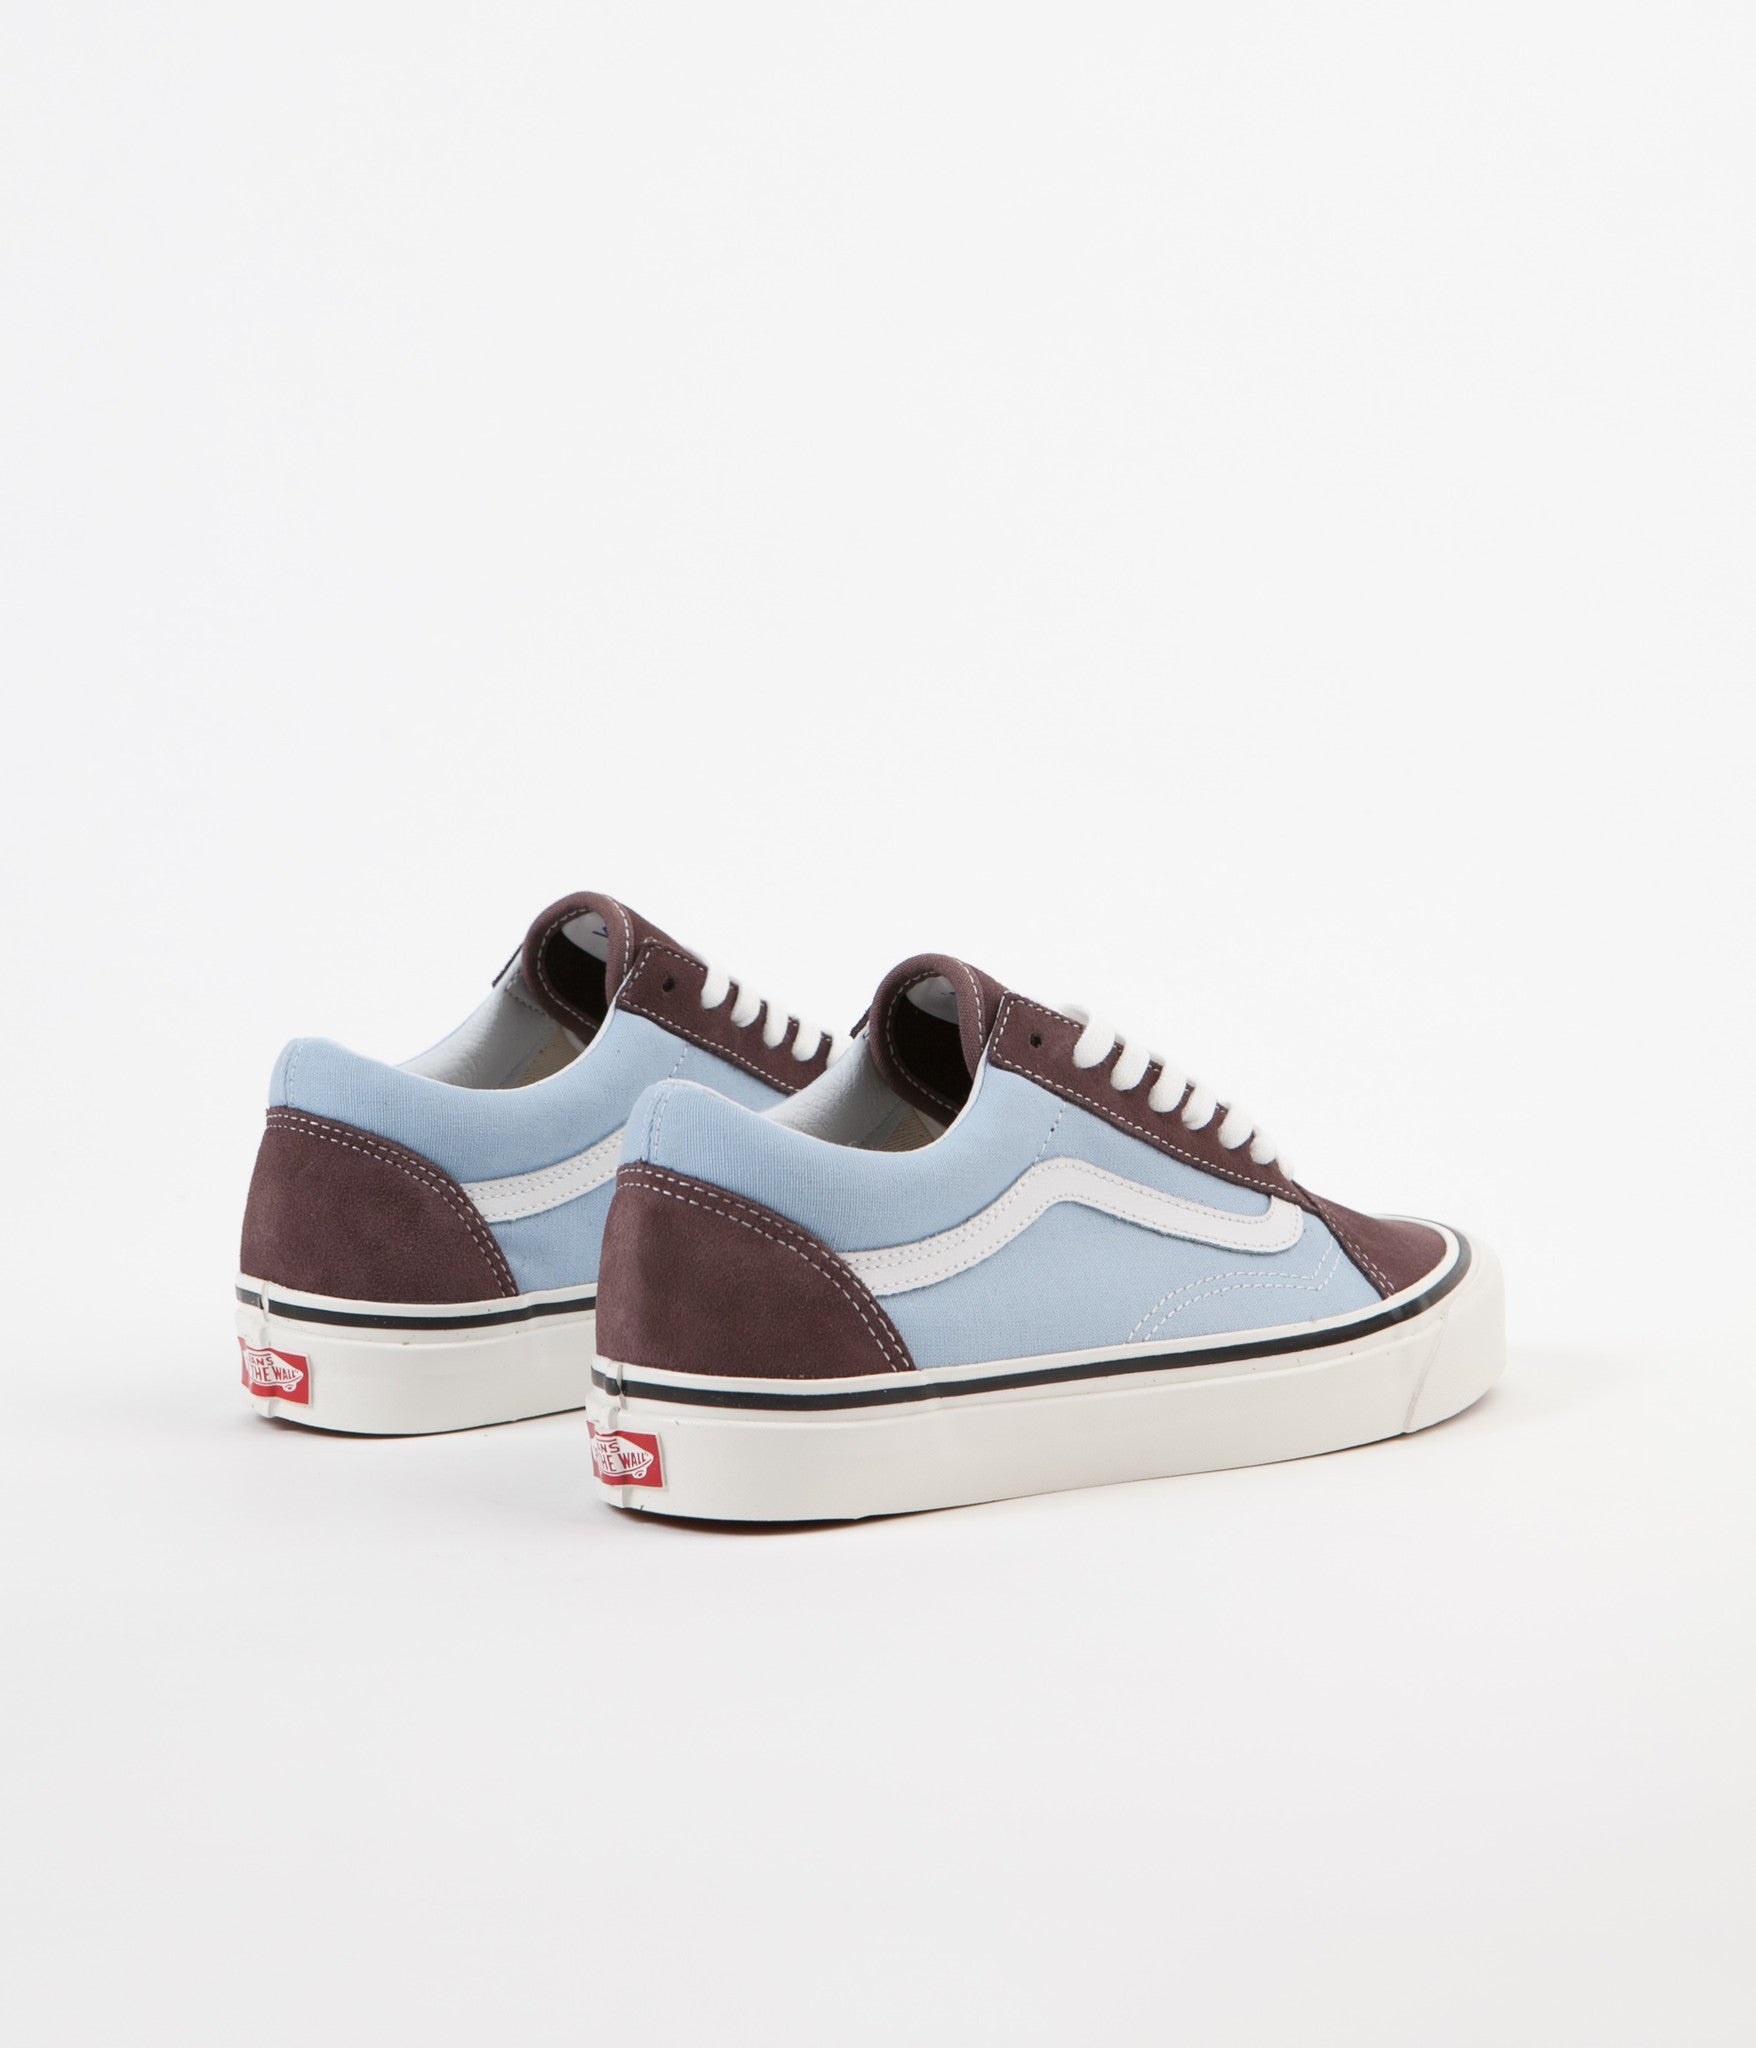 d4b4b6b840 ... Vans Old Skool 36 DX Anaheim Factory Shoes - Brown   Light Blue ...